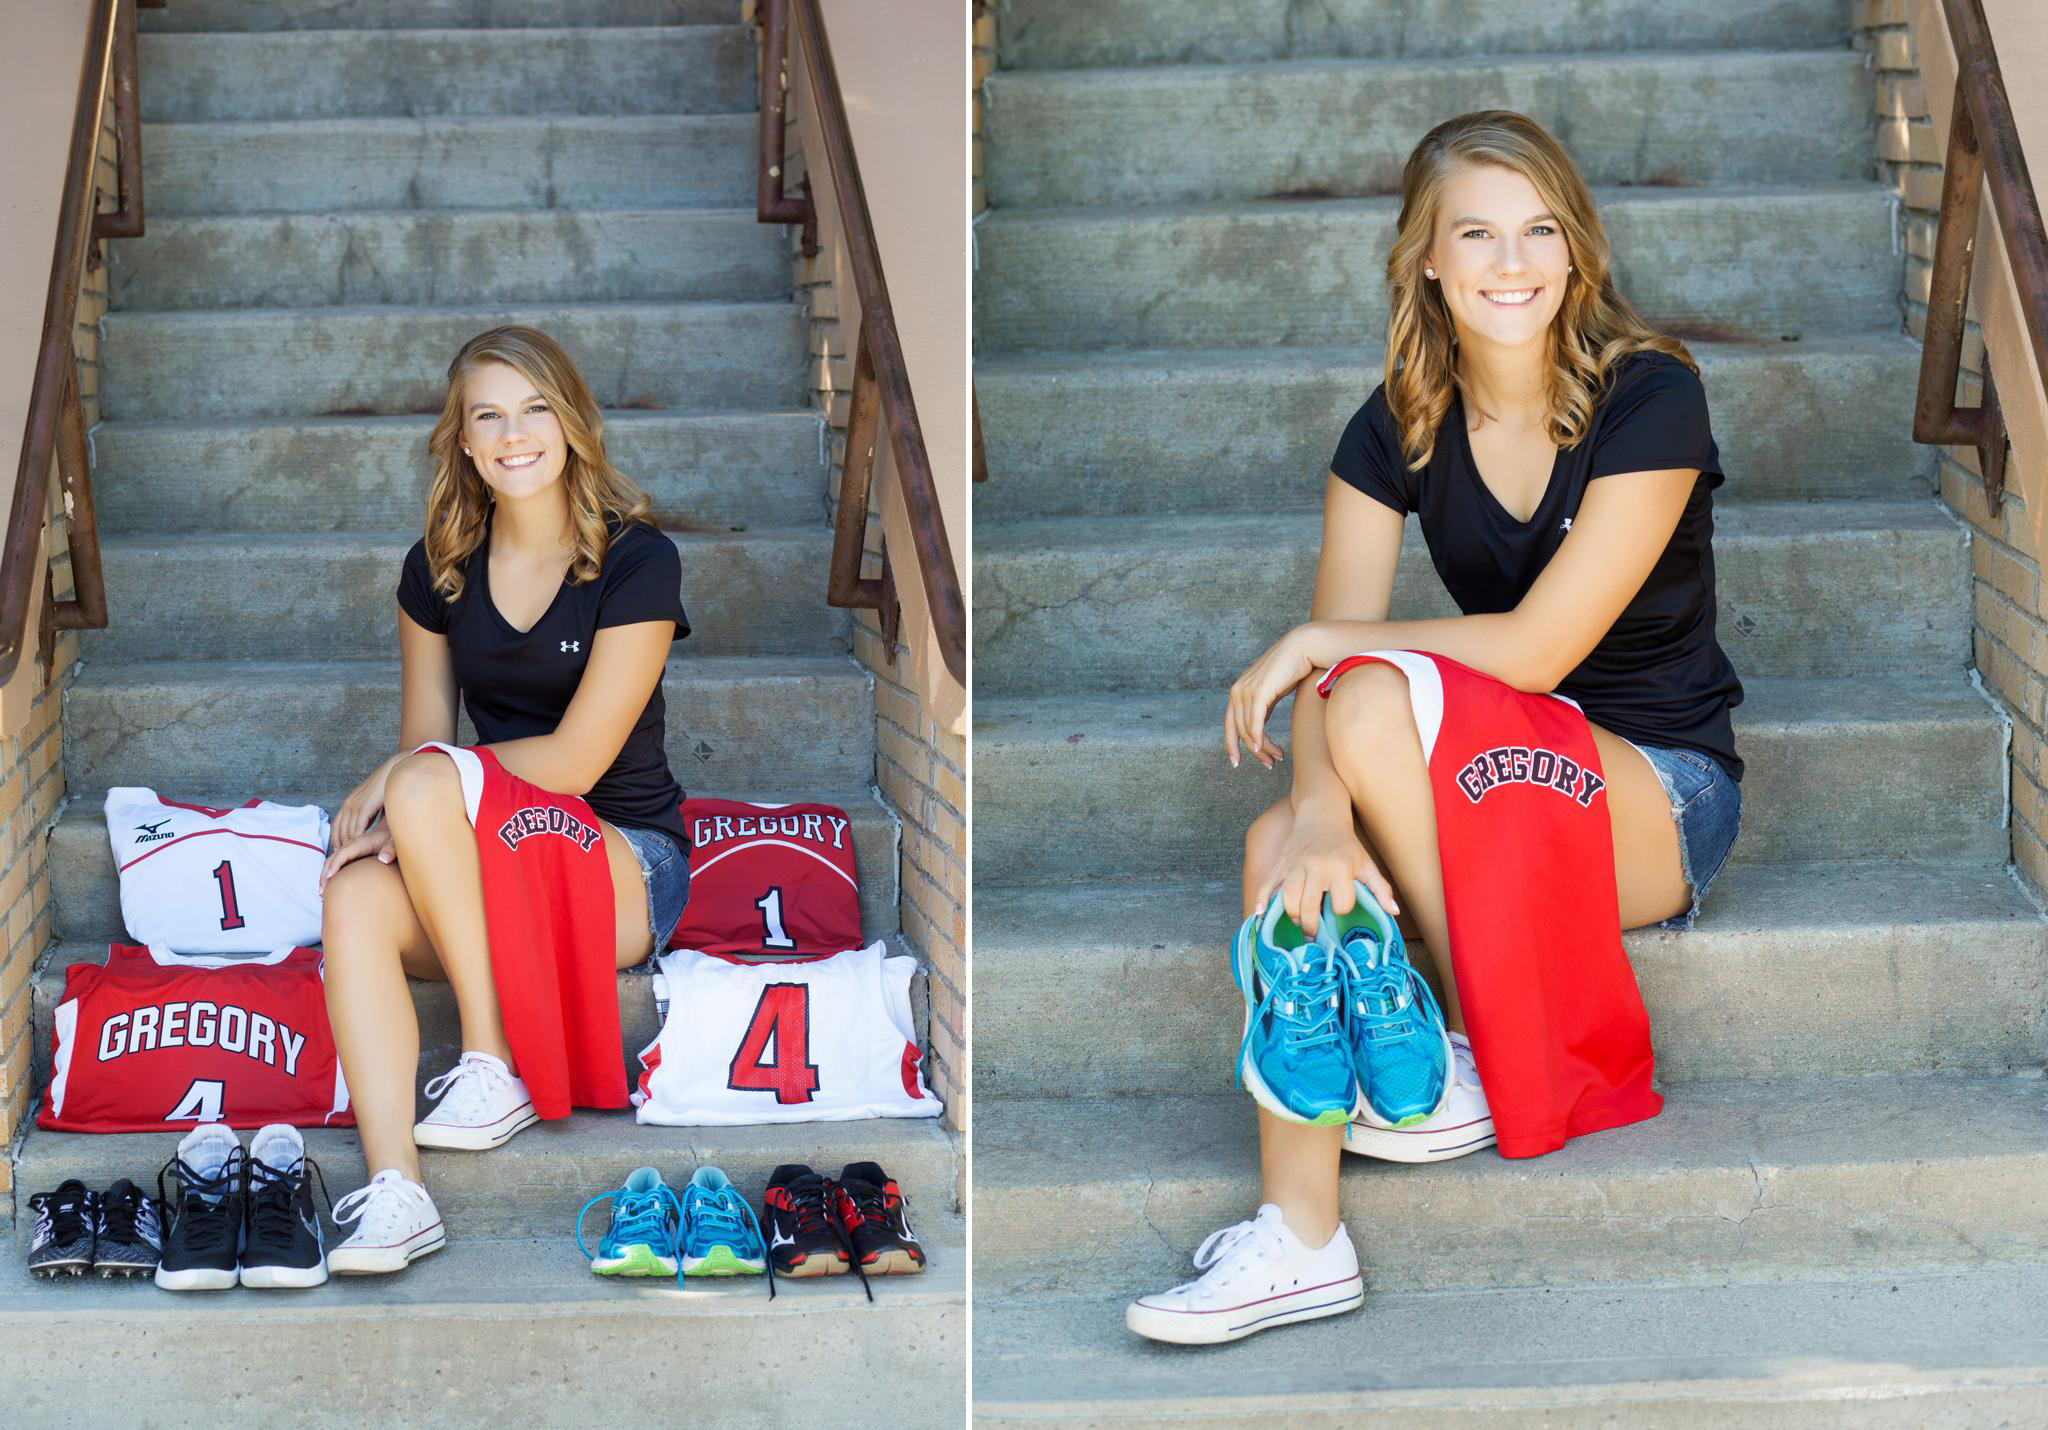 blonde senior girl sitting on steps surrounded by high school jerseys